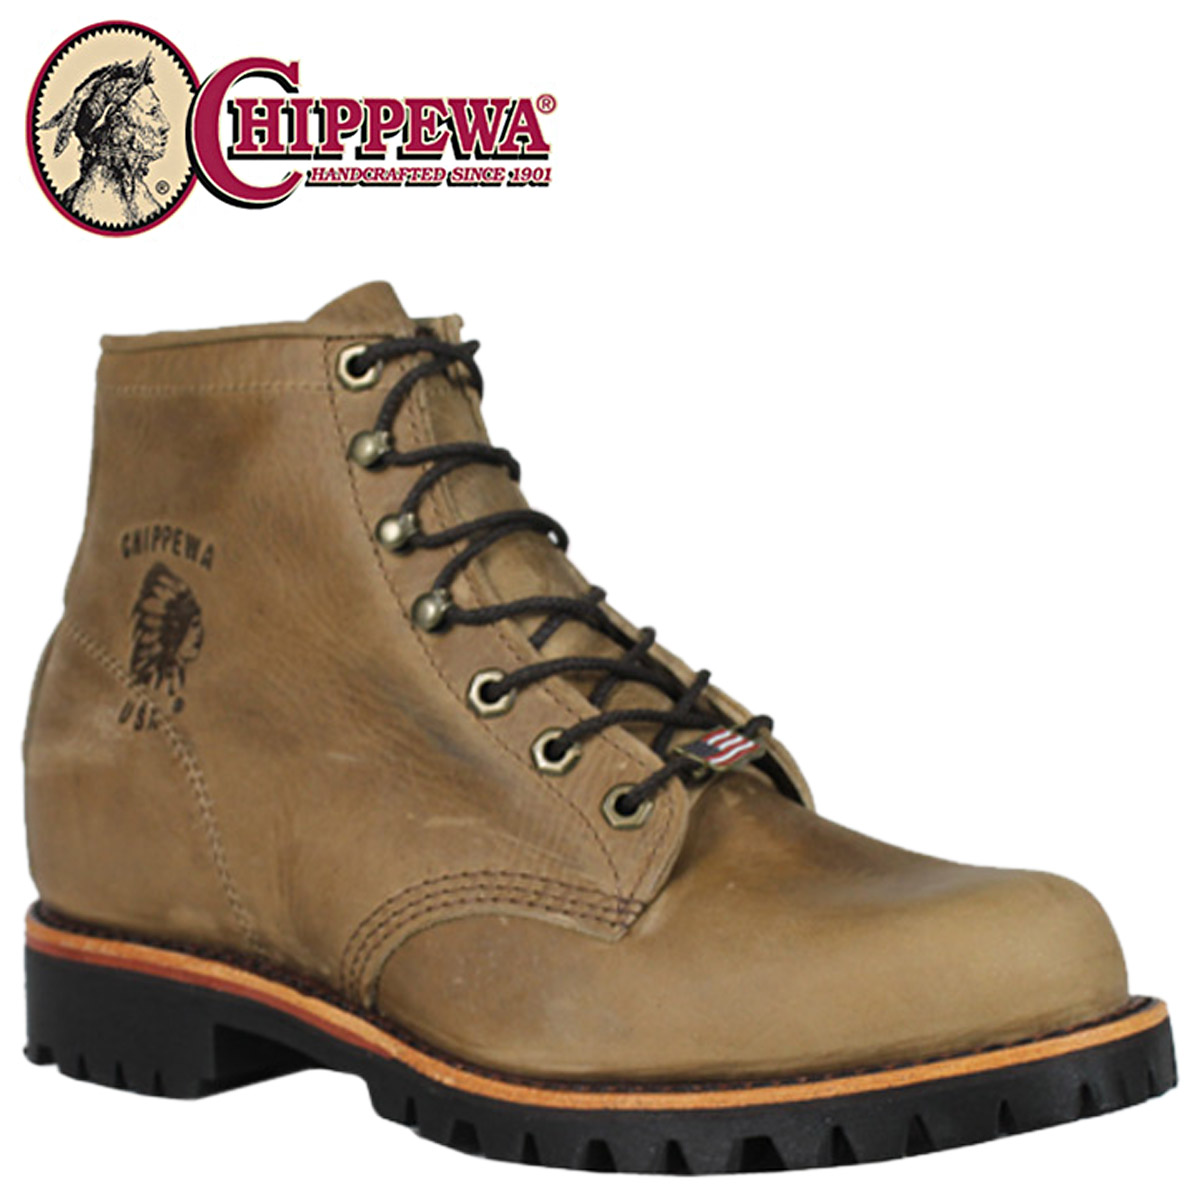 ea1910e9883ad [SOLD OUT] チペワ CHIPPEWA 6 inches race up rodeo tongue 6INCH LACE UP RODEO D  Wise leather 20082 boots BOOTS men